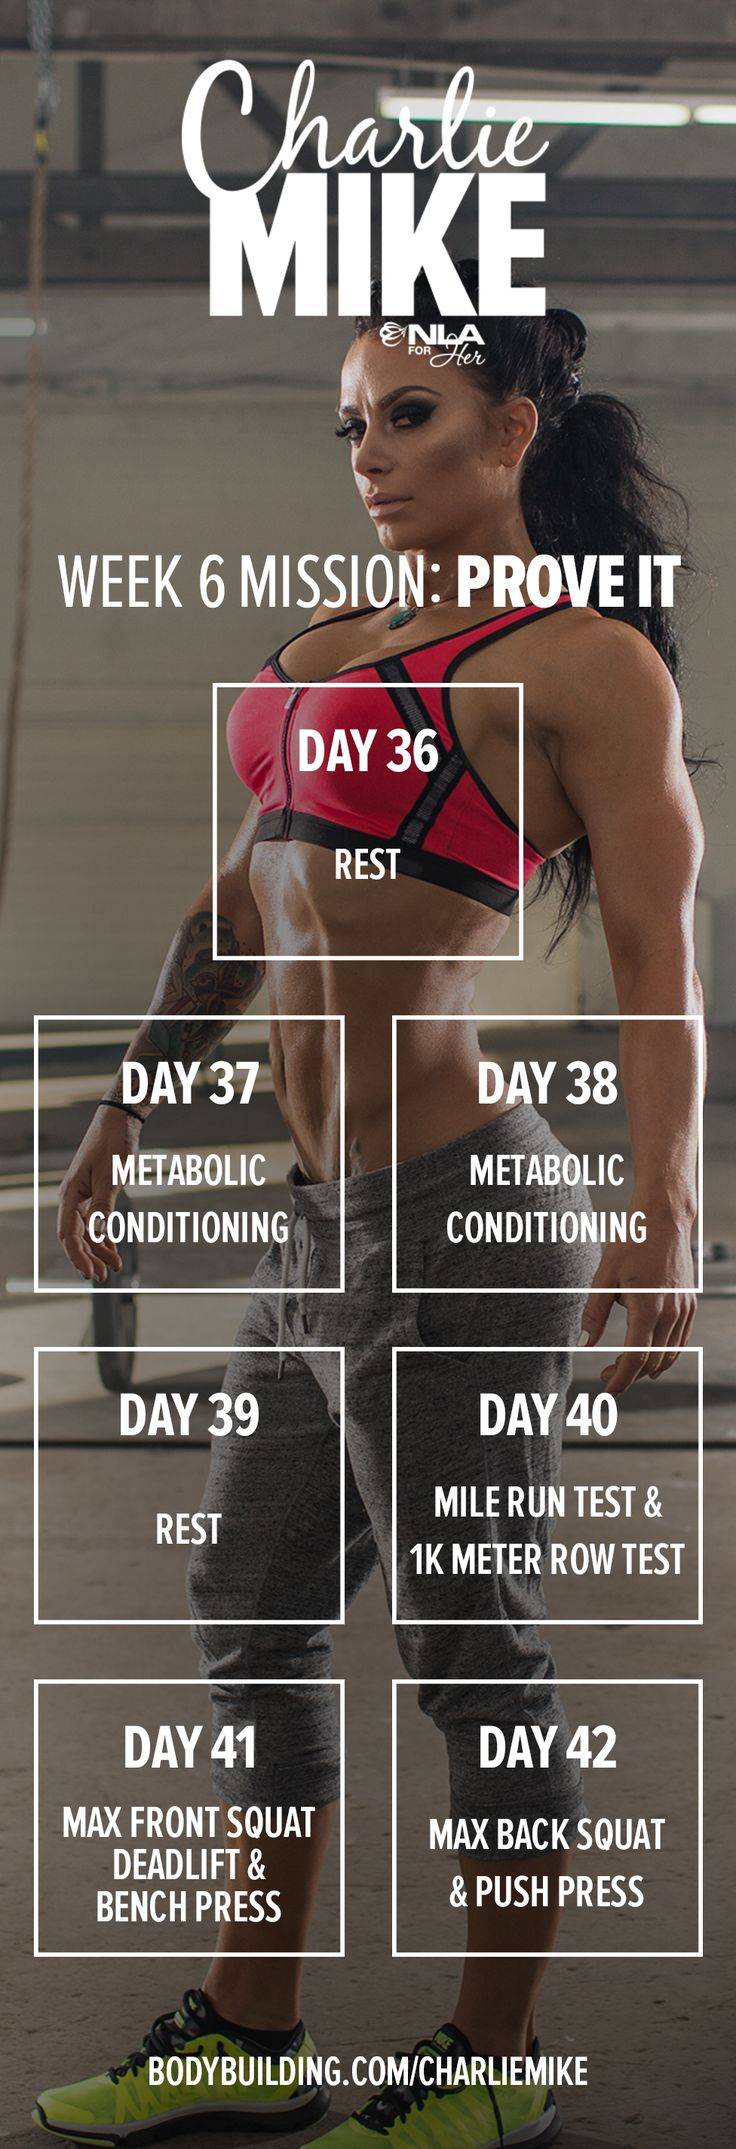 It's Week 6! You'll start it by working on your conditioning, then you'll retest your maxes. But first, hooray for a rest day! Charlie Mike 6-Week. Ashley Horner's 6-Week Training Program.